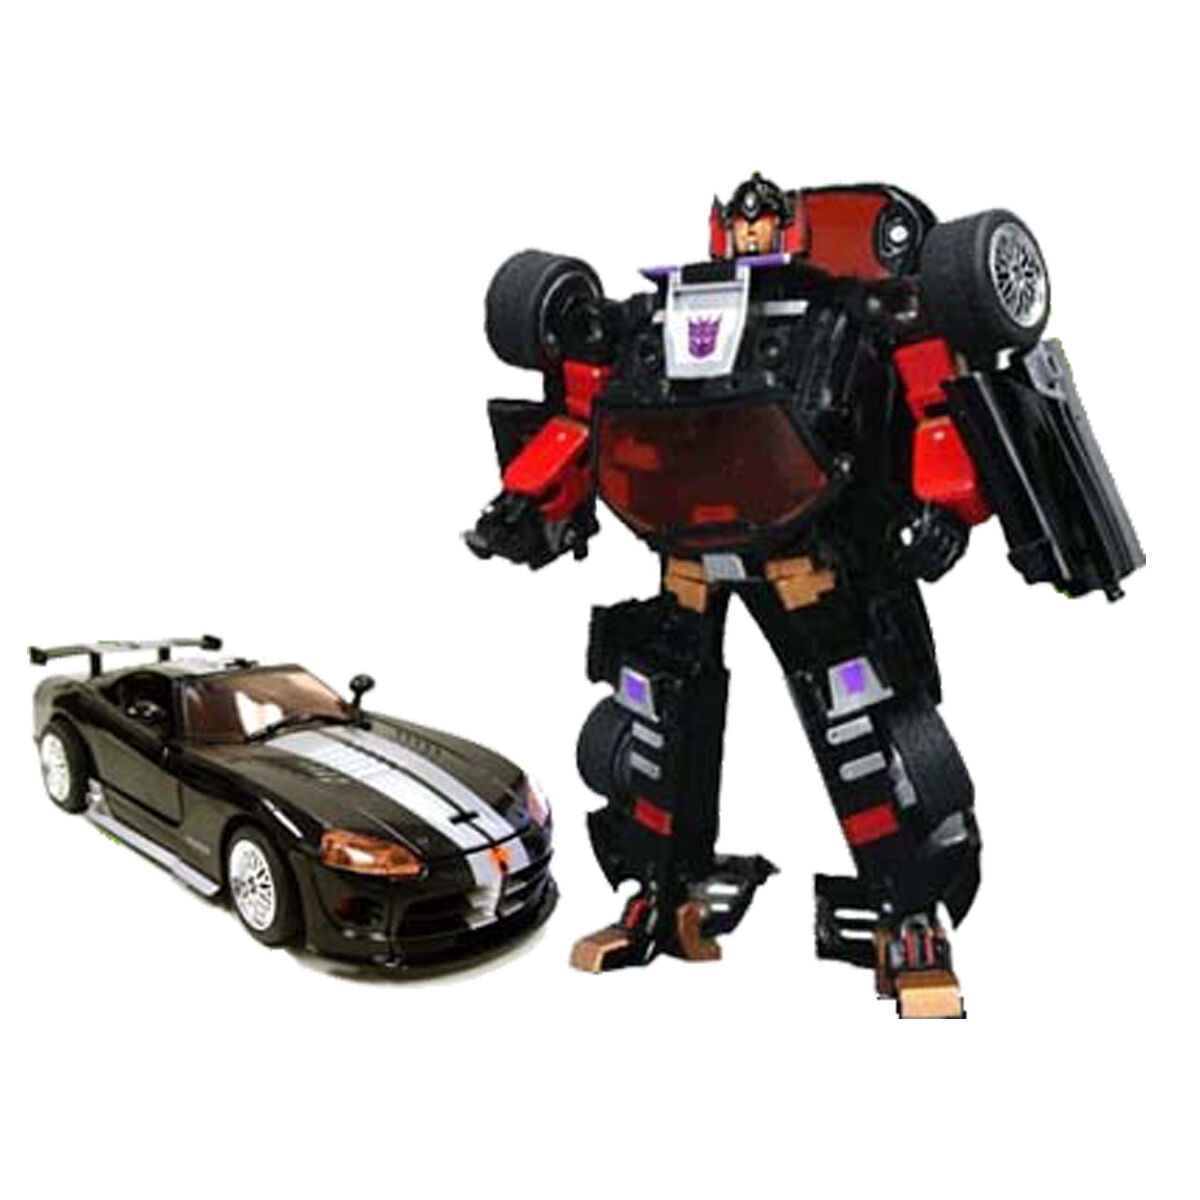 Binaltech BT-05 Dead End Dodge Viper bodywork in metal - Transformers